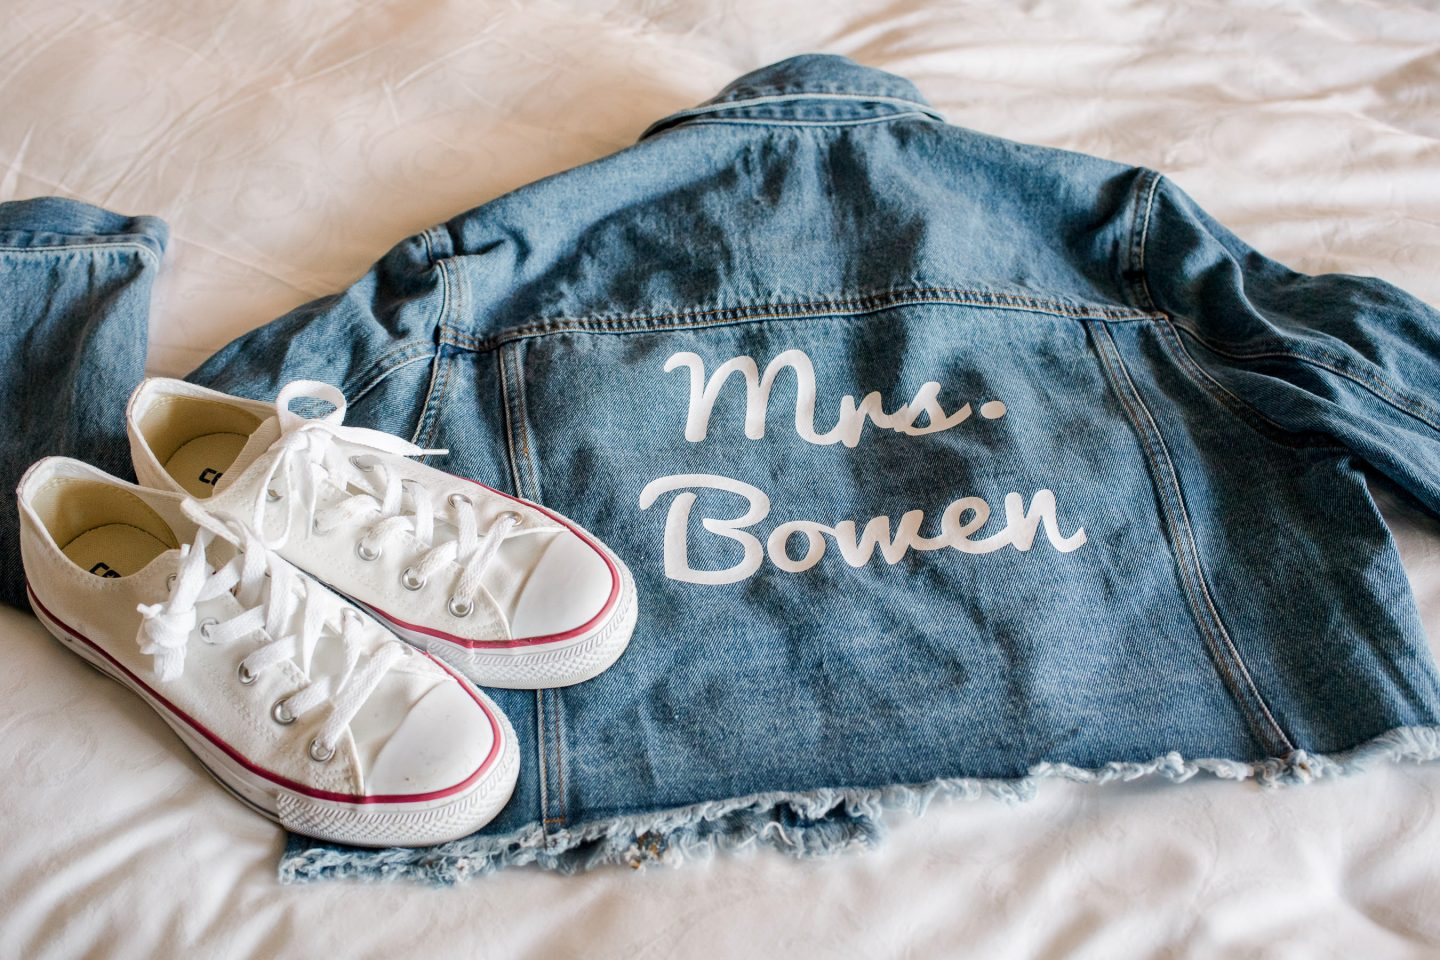 Customized bride jean jacket at this Sea Island wedding weekend in Georgia, USA | Photo by Liz Banfield